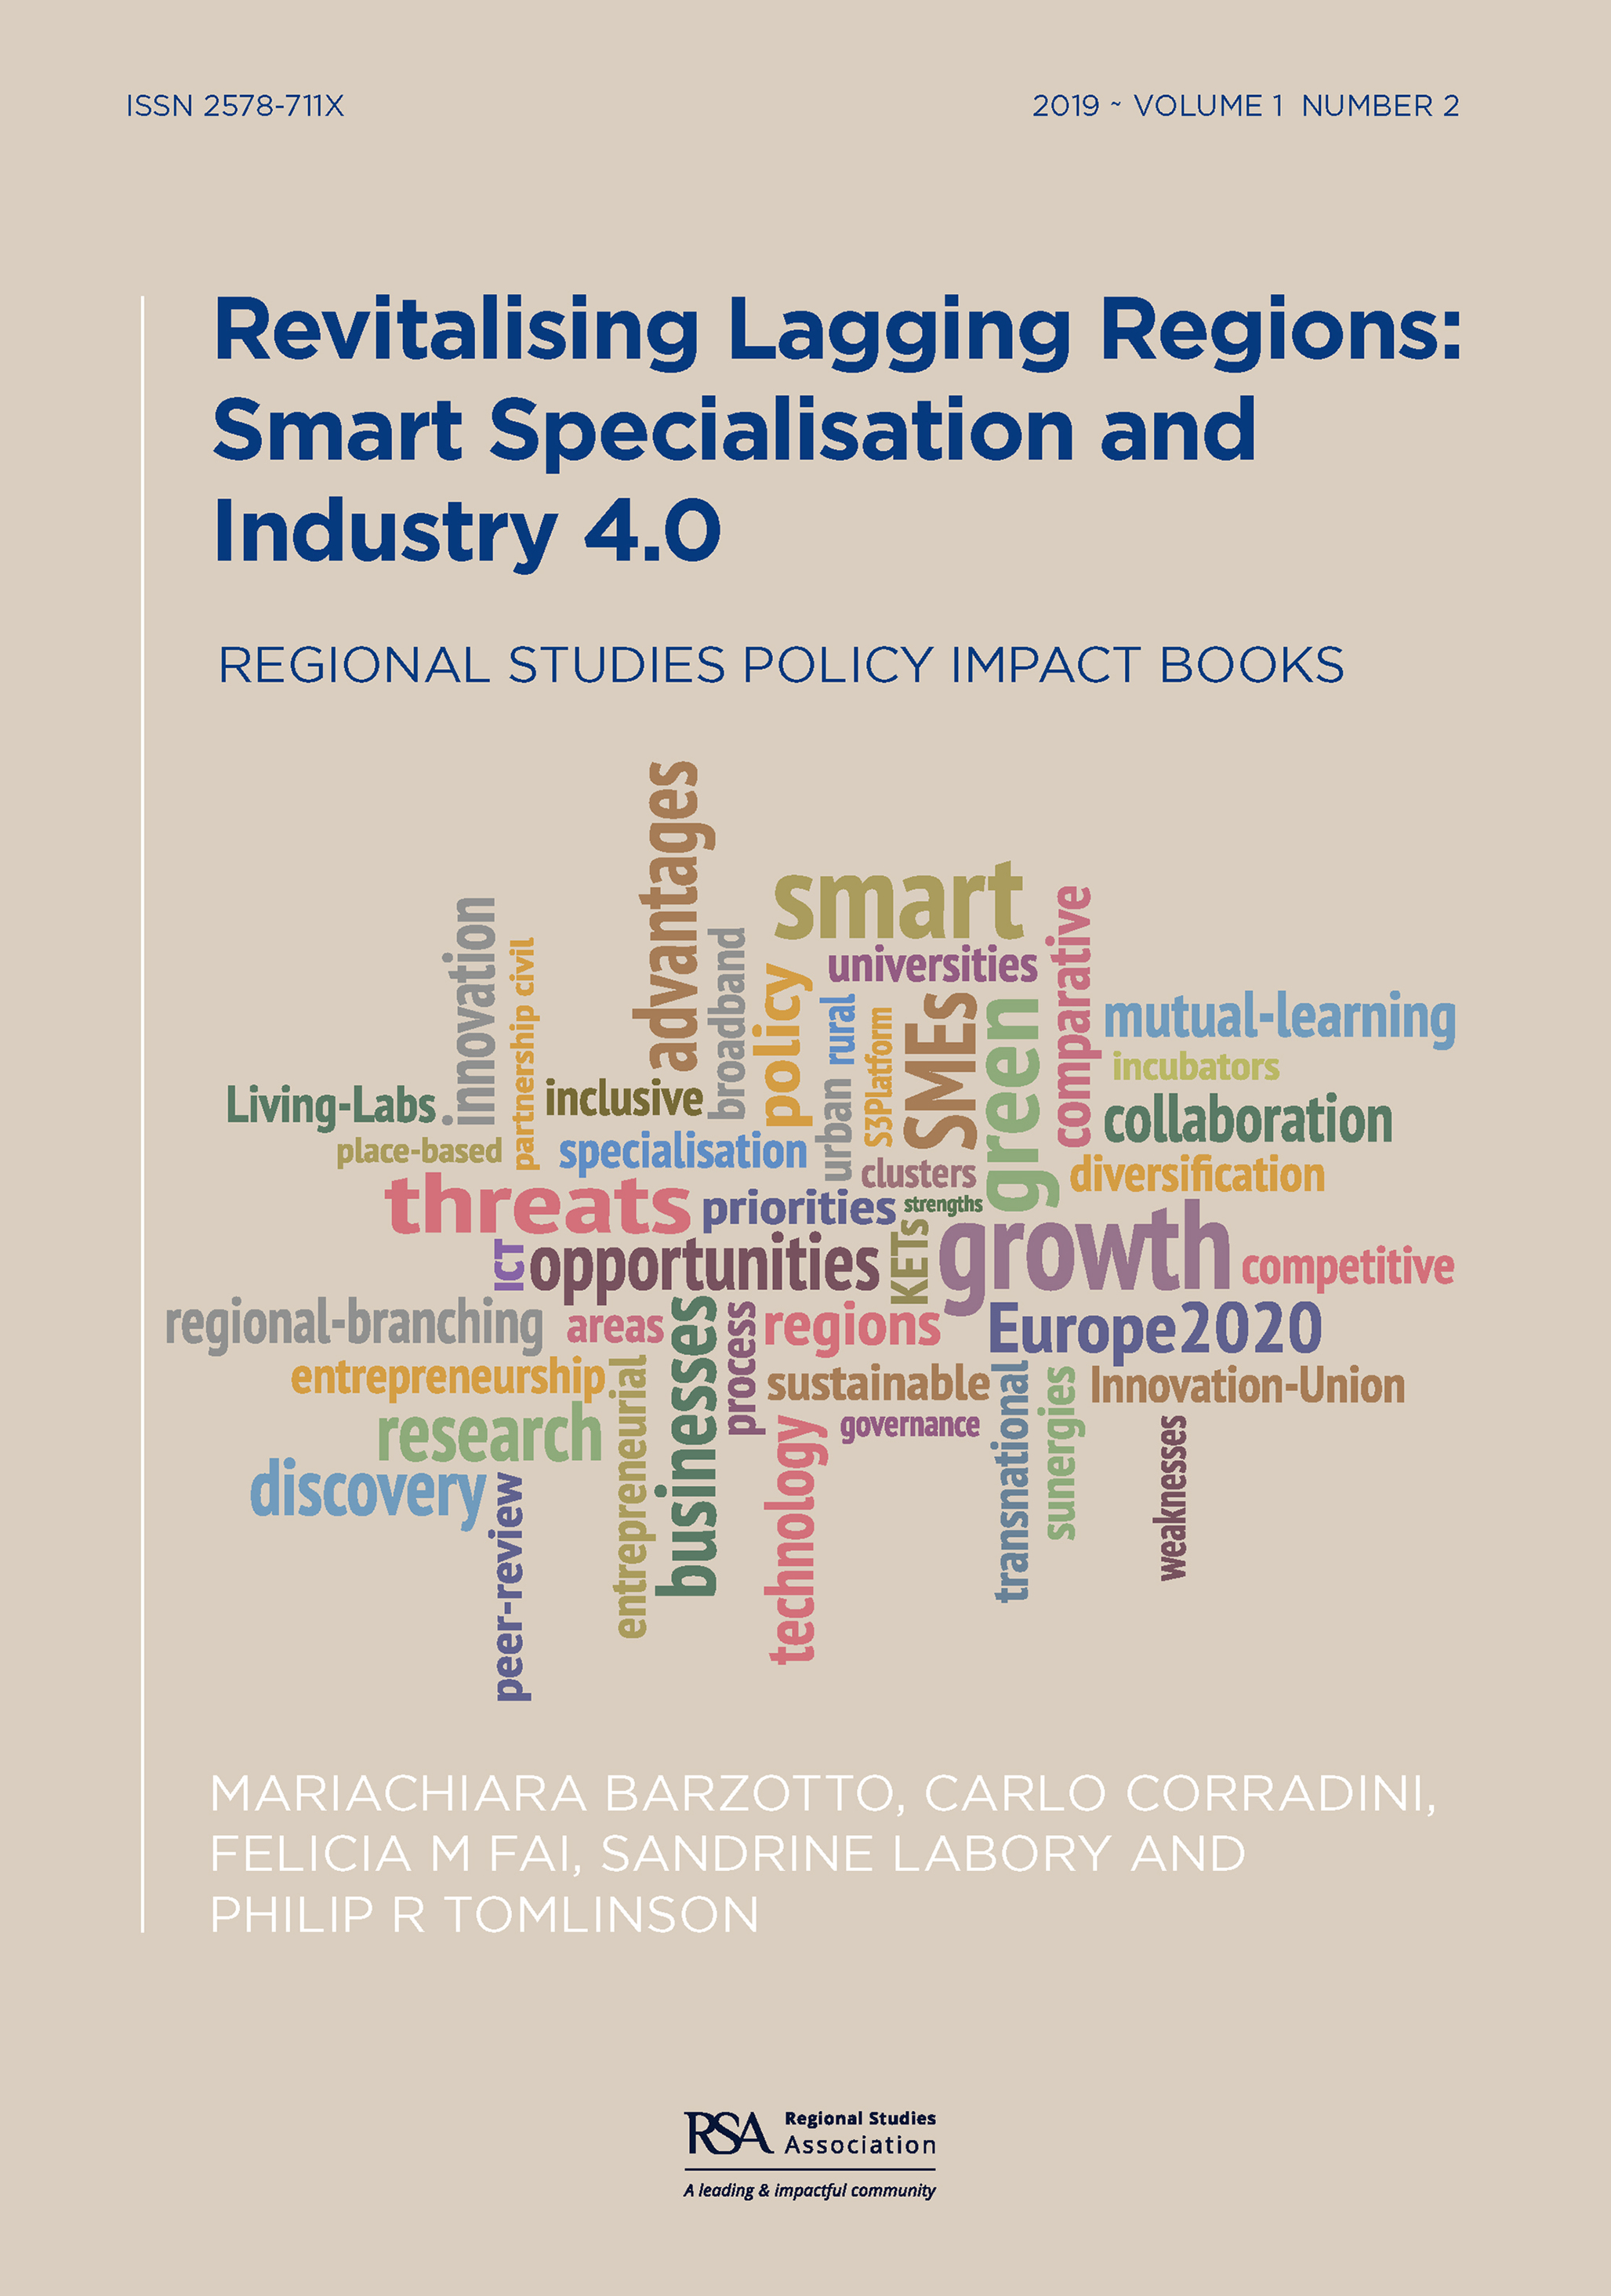 Revitalising Lagging Regions: Smart Specialisation and Industry 4.0 book cover